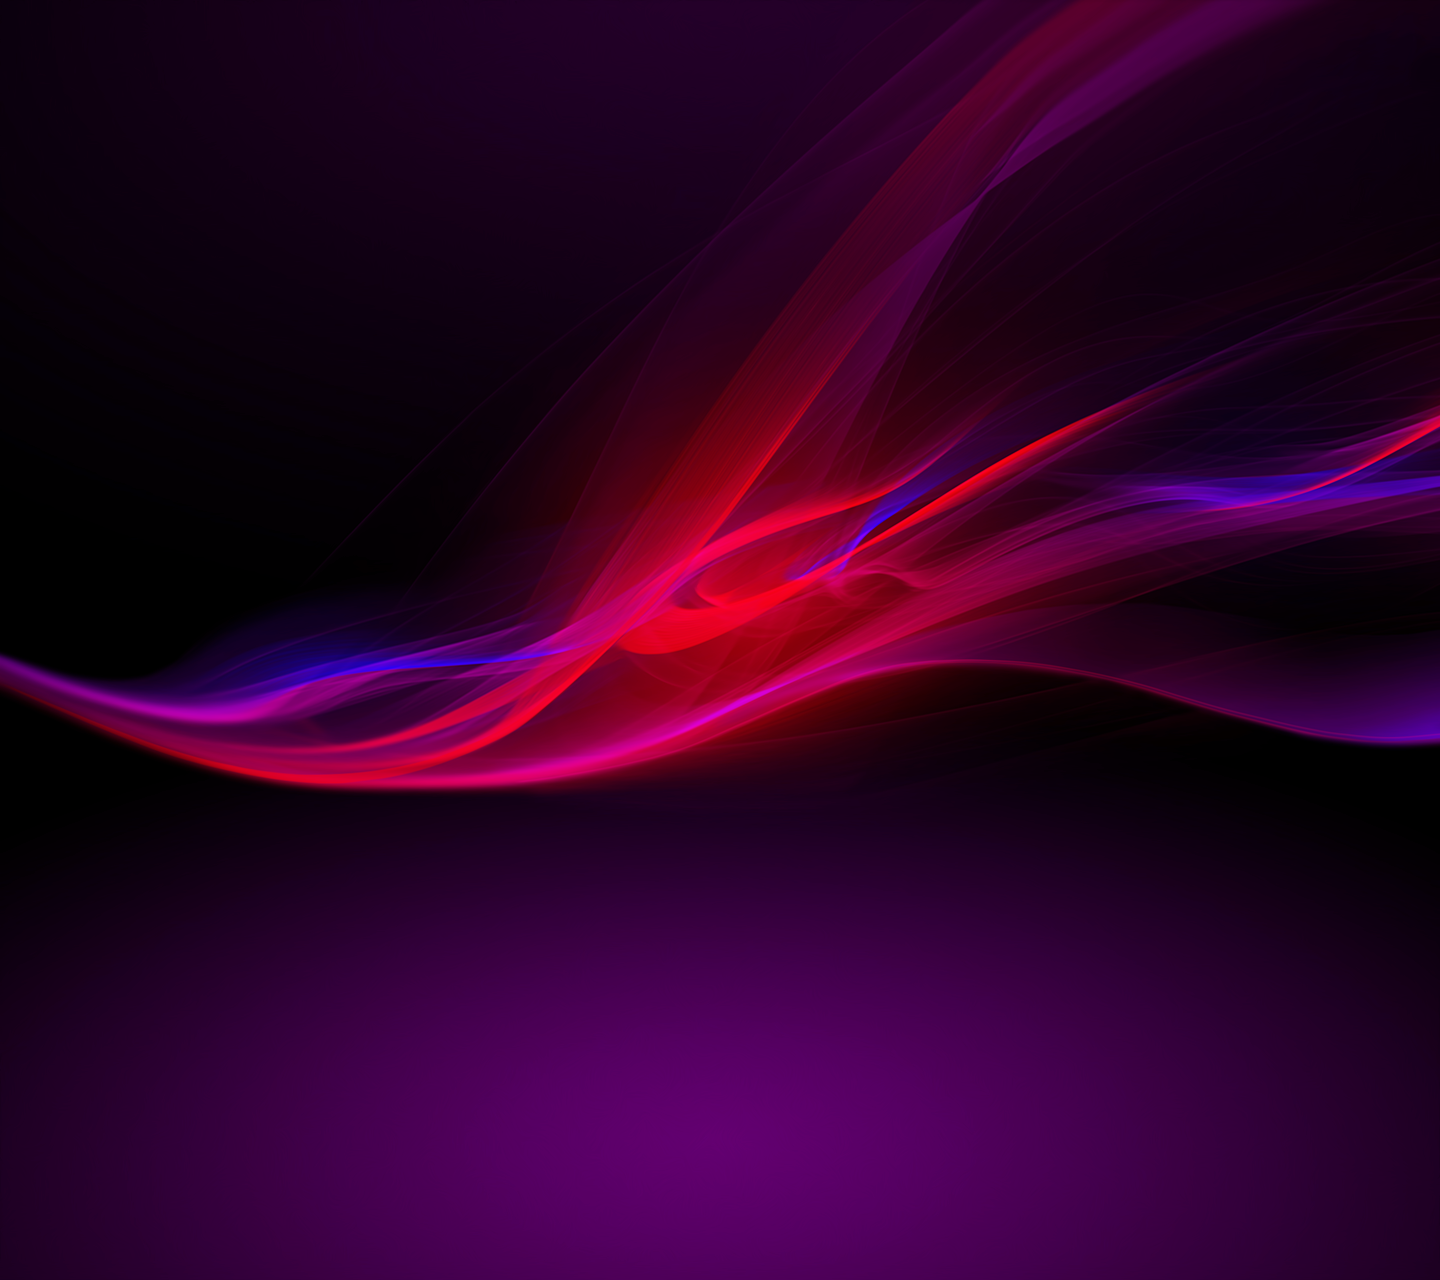 Wallpaper Xperia